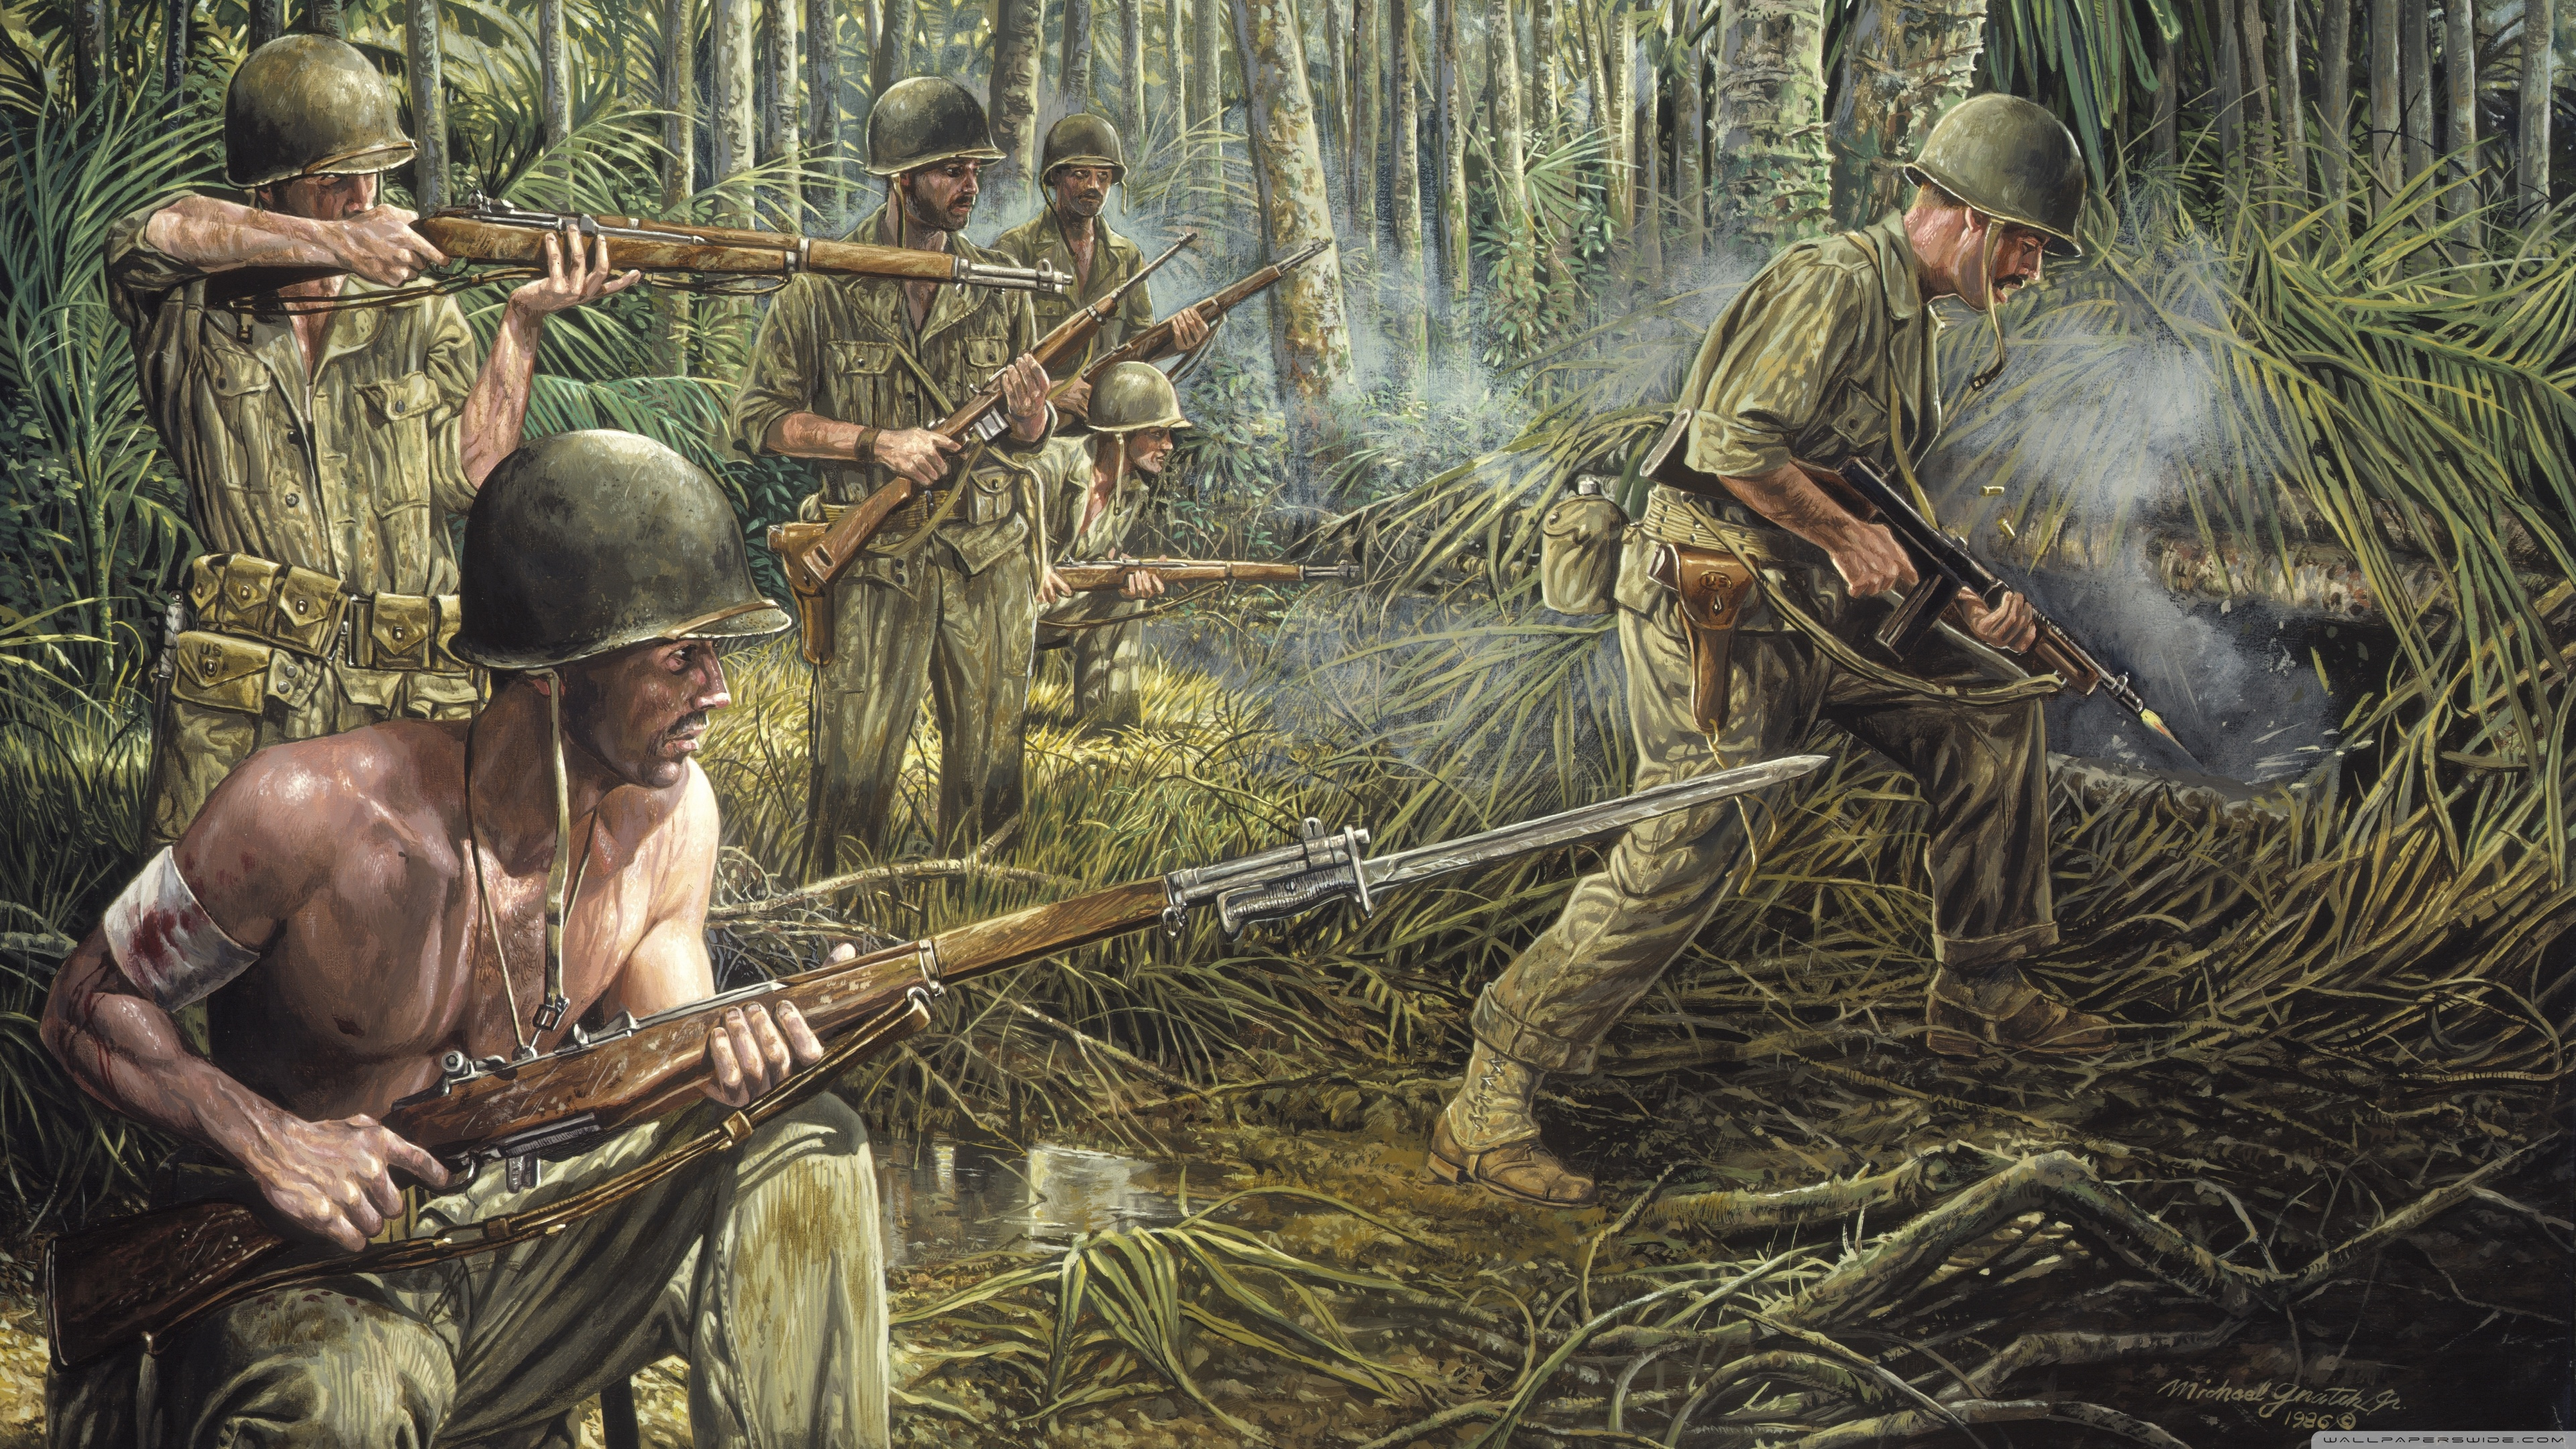 Vietnam War Painting 4k Hd Desktop Wallpaper For 4k Ultra